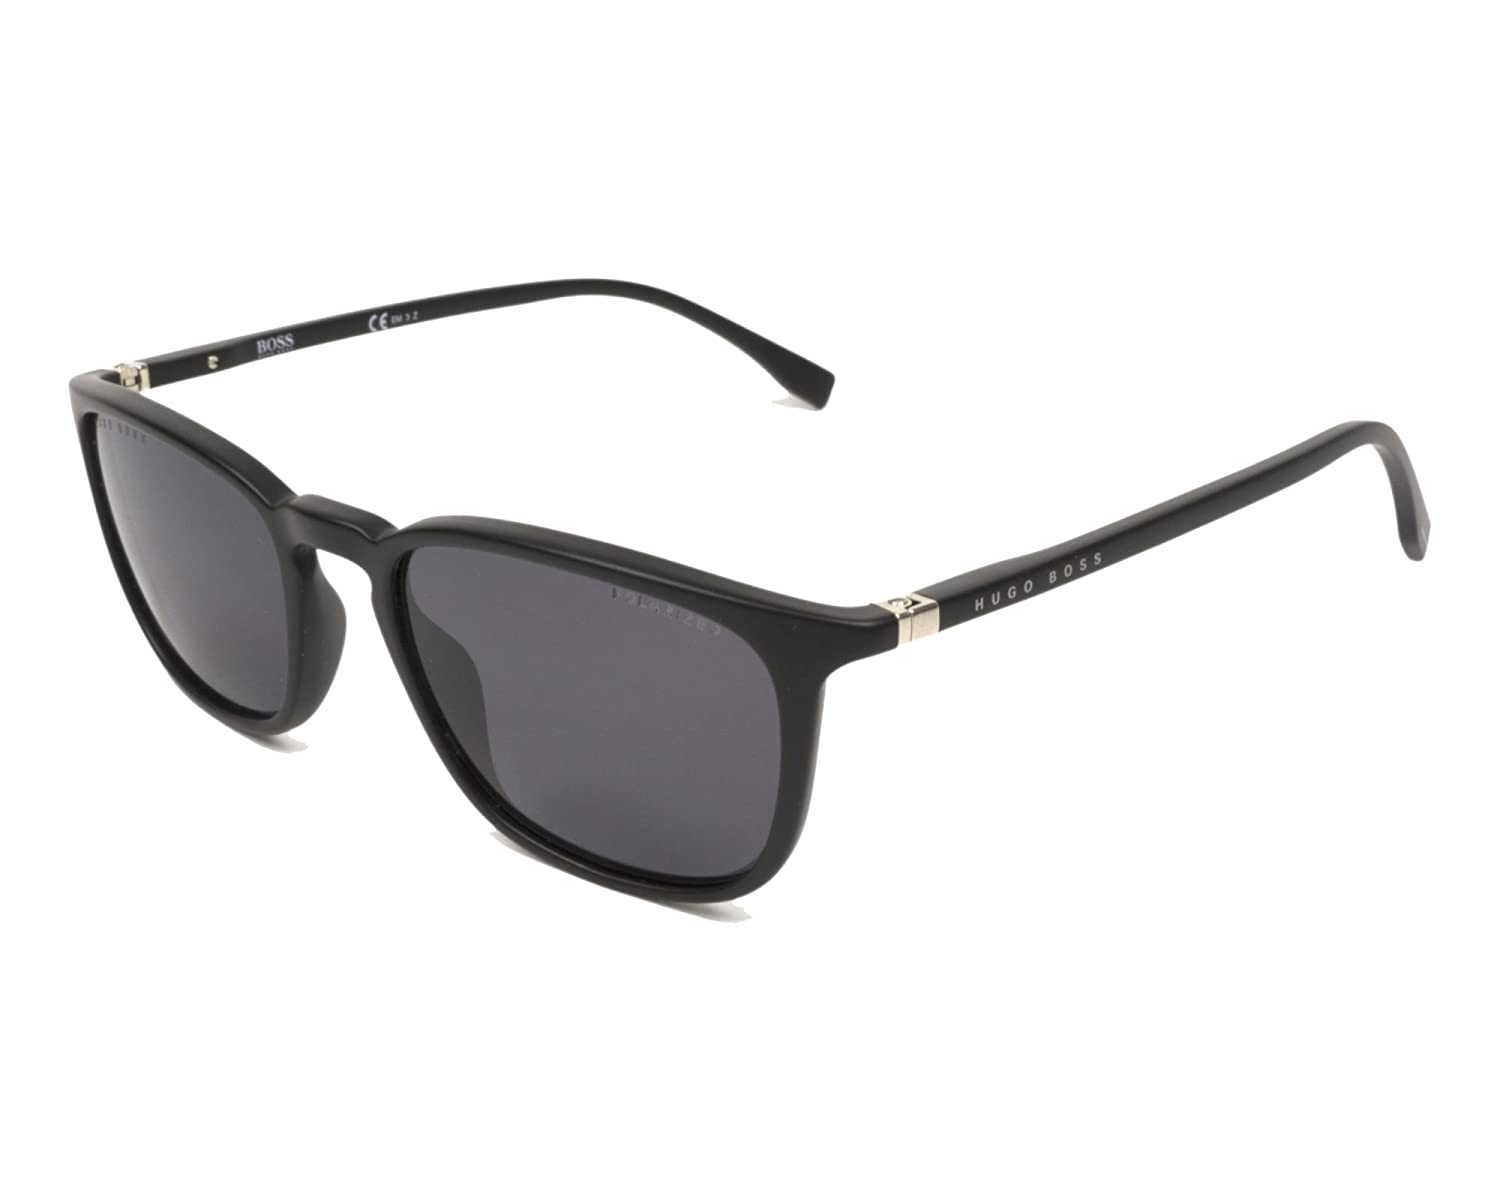 Gafas de Sol Hugo Boss BOSS 0960/S 003 (M9): Amazon.es: Ropa ...